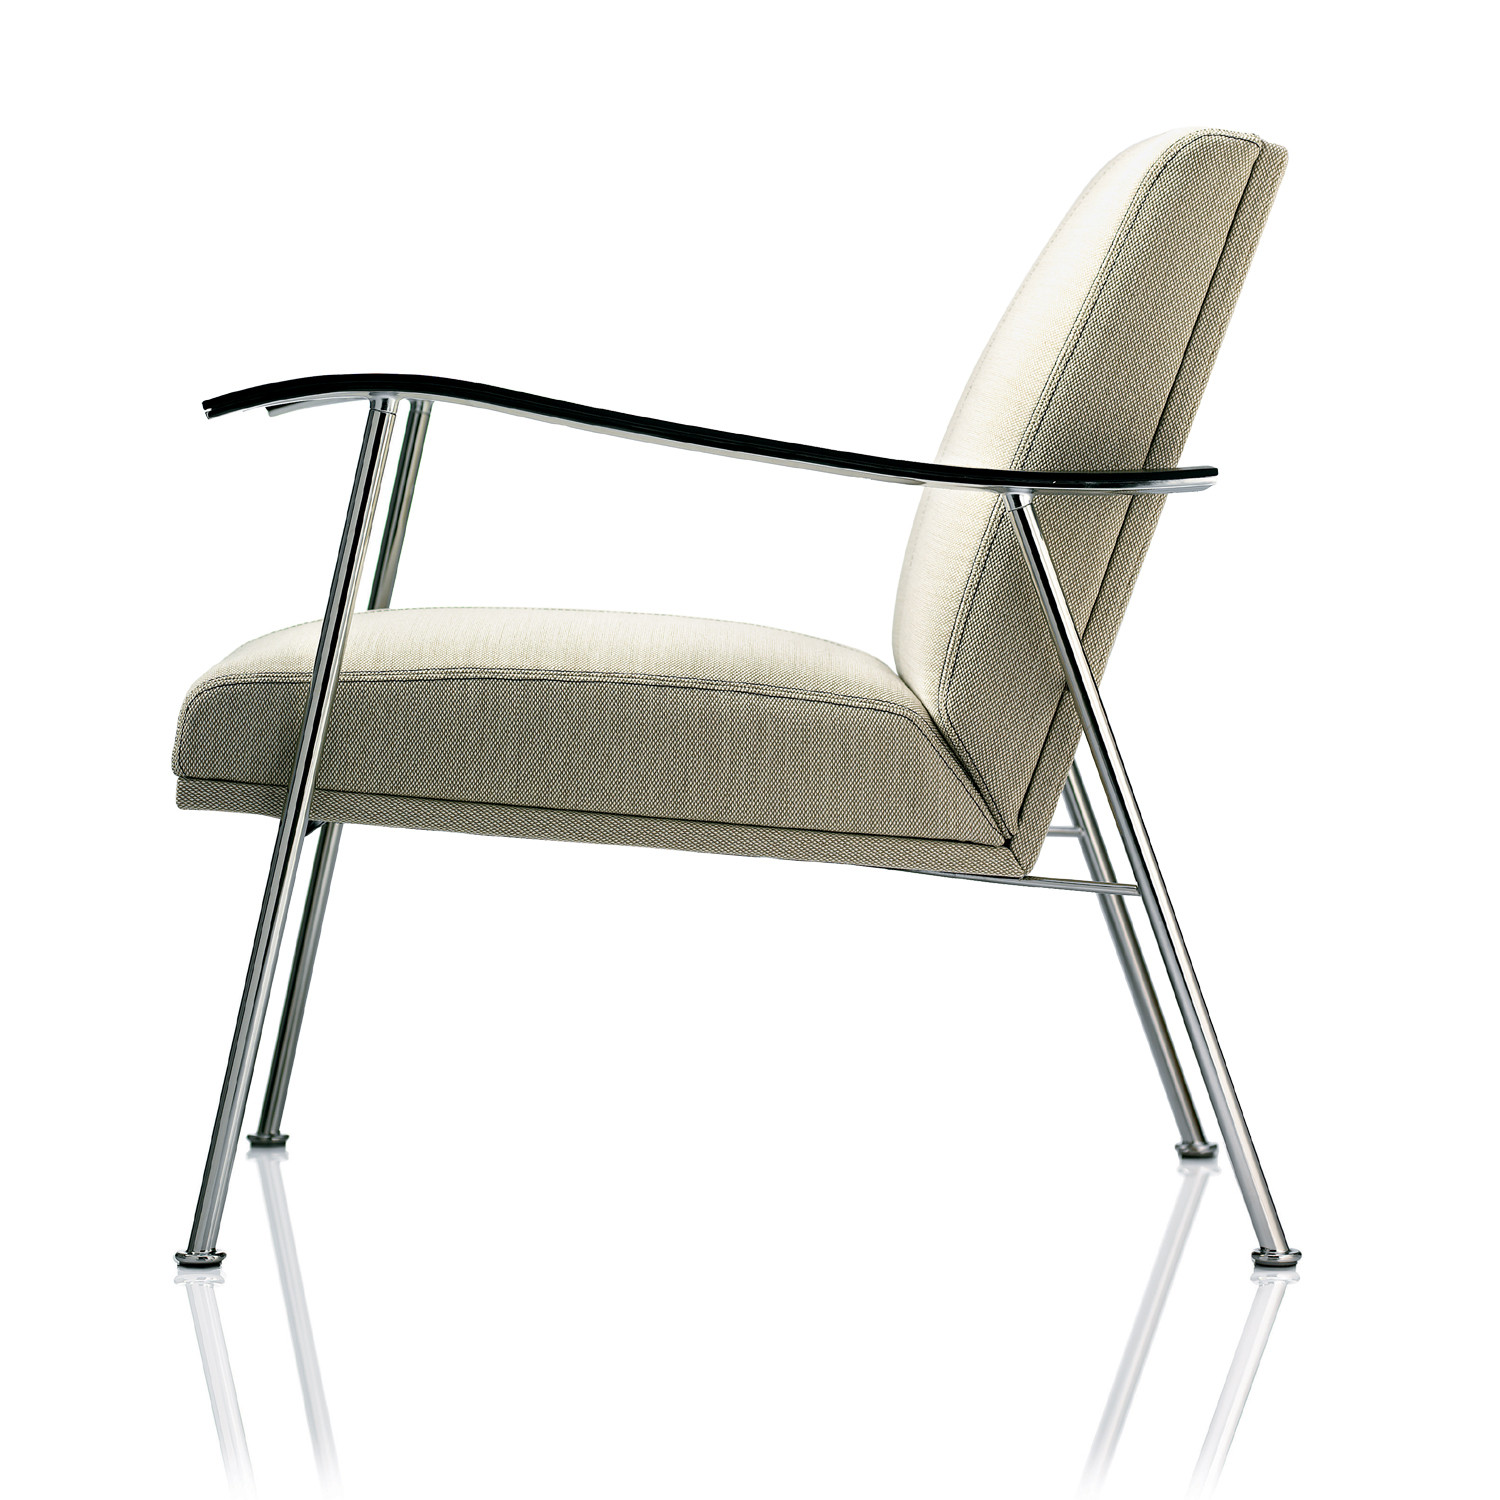 Sahara Easy Chair SIde Profile